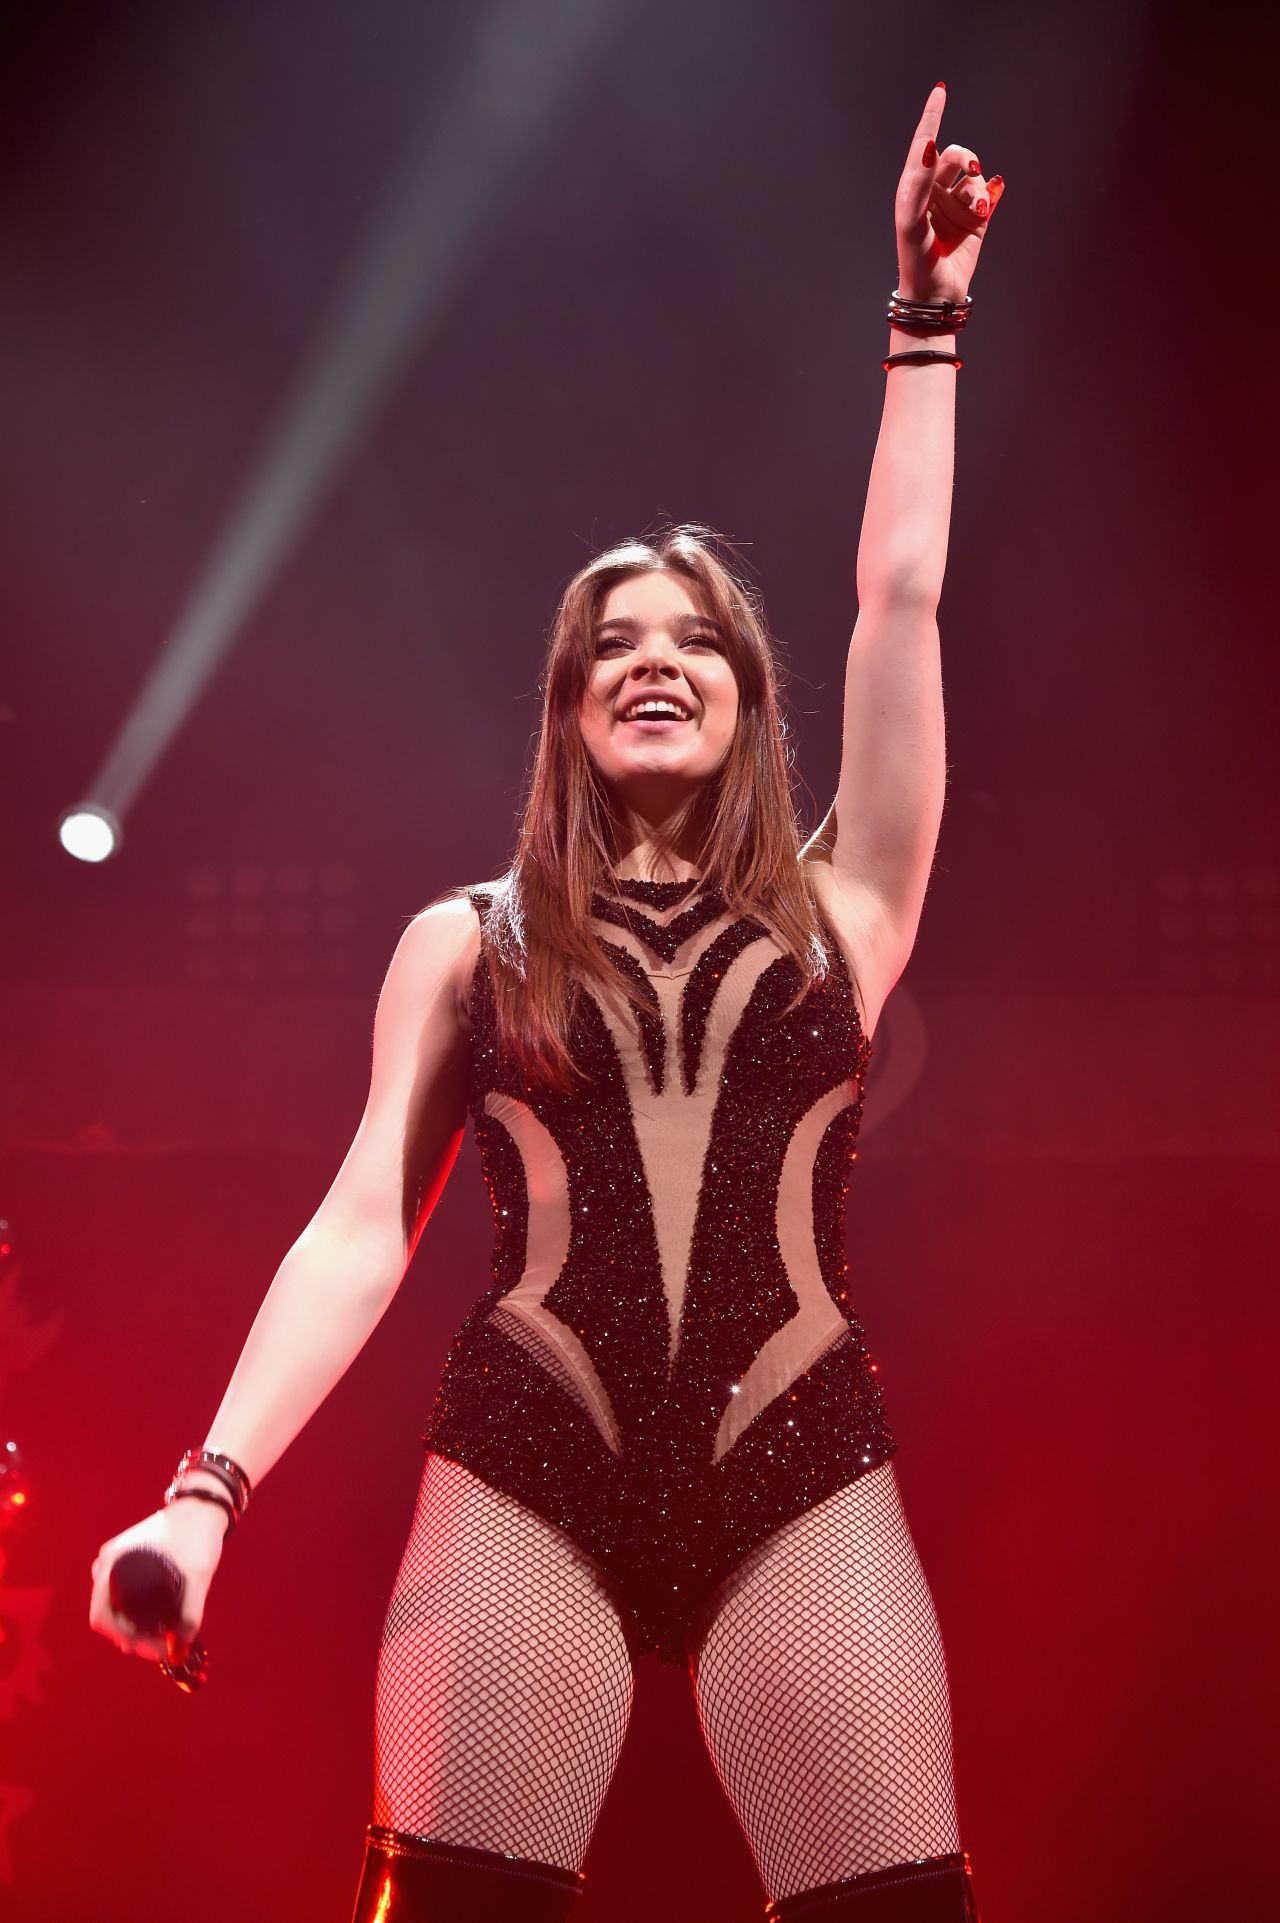 Hailee Steinfeld Performs At Q102 S Jingle Ball 2015 In